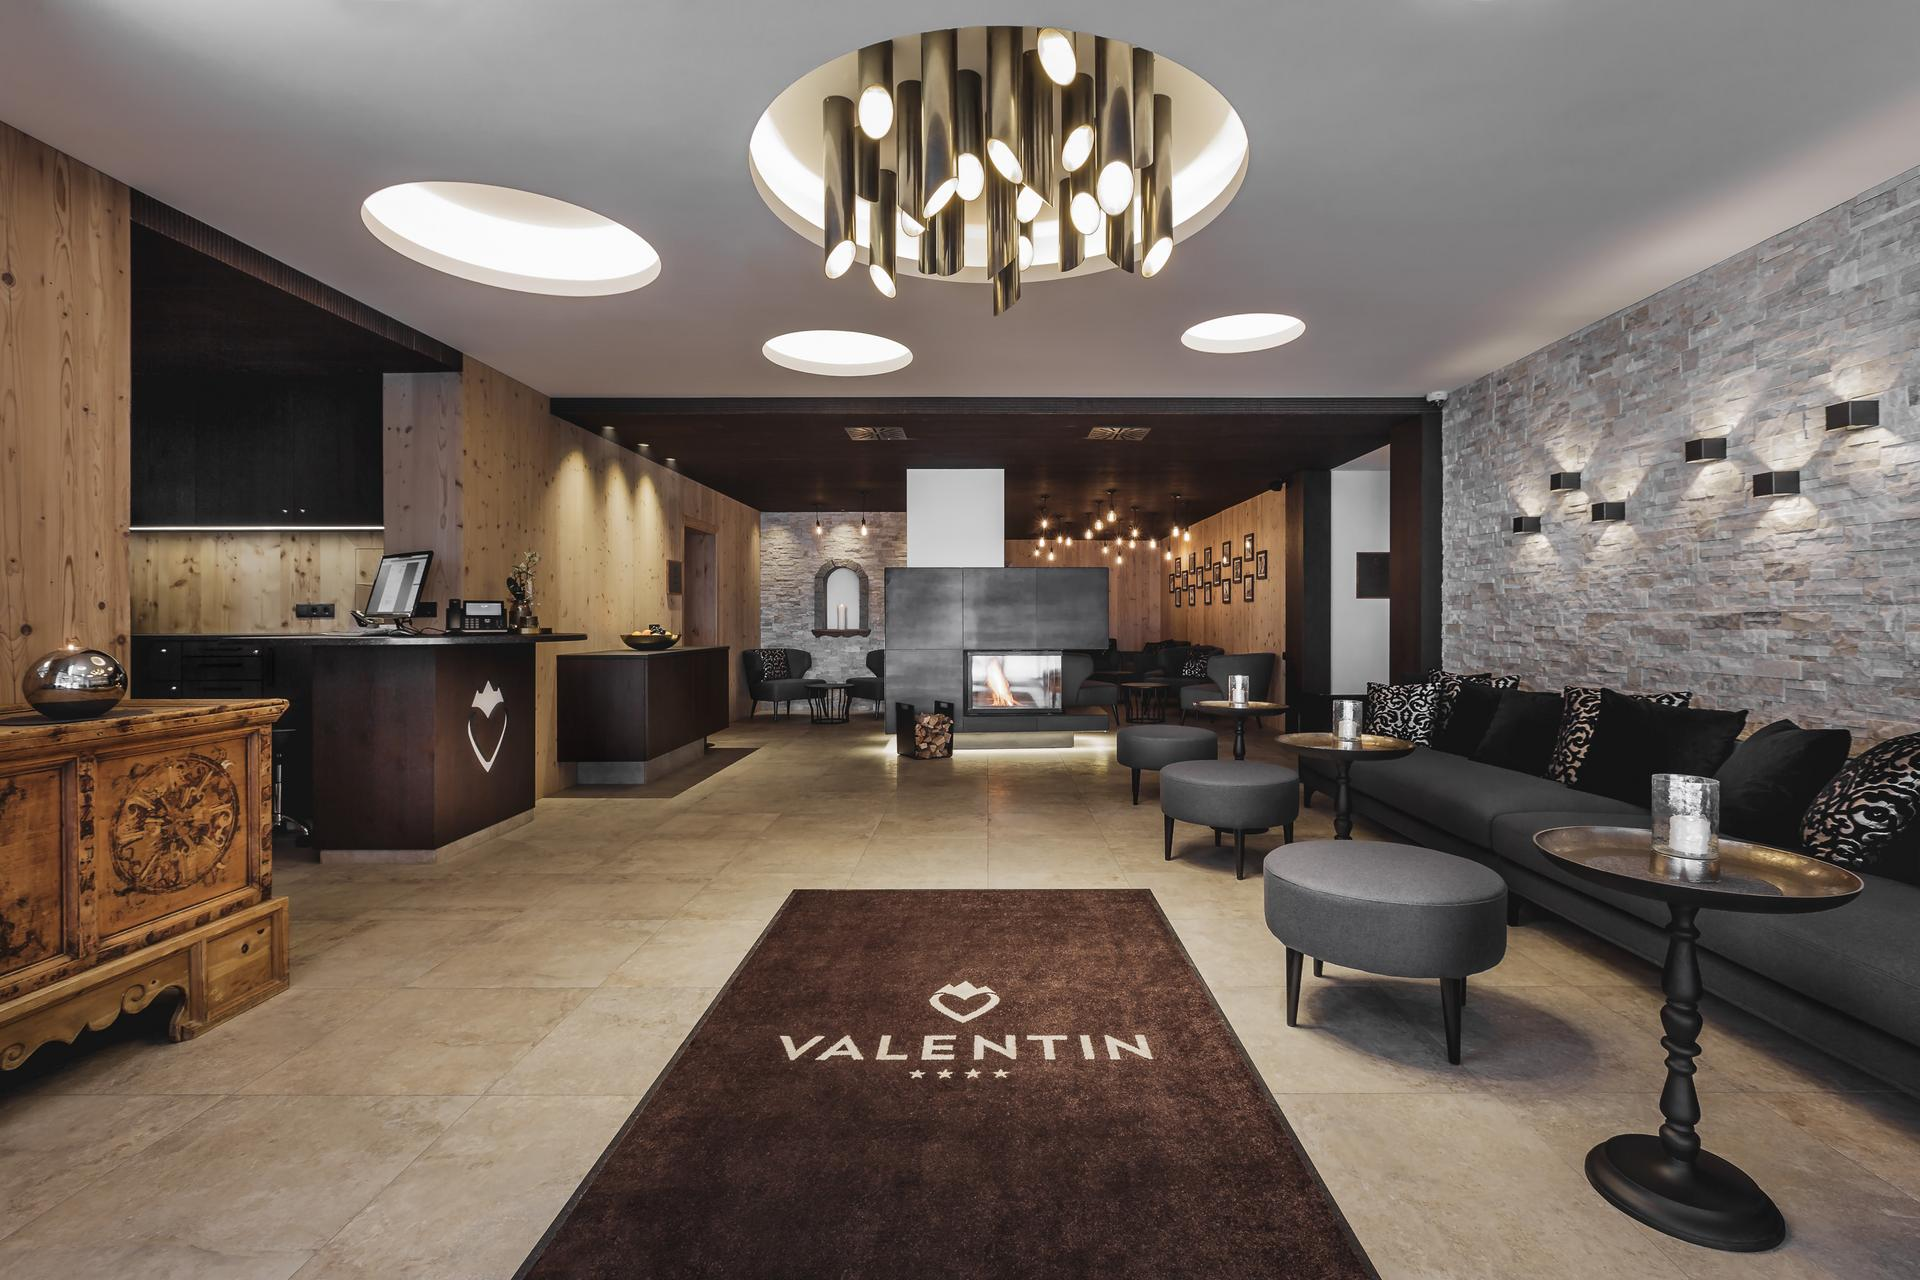 Impressions Of Valentin Apartments And Solden - Interior-design-apartments